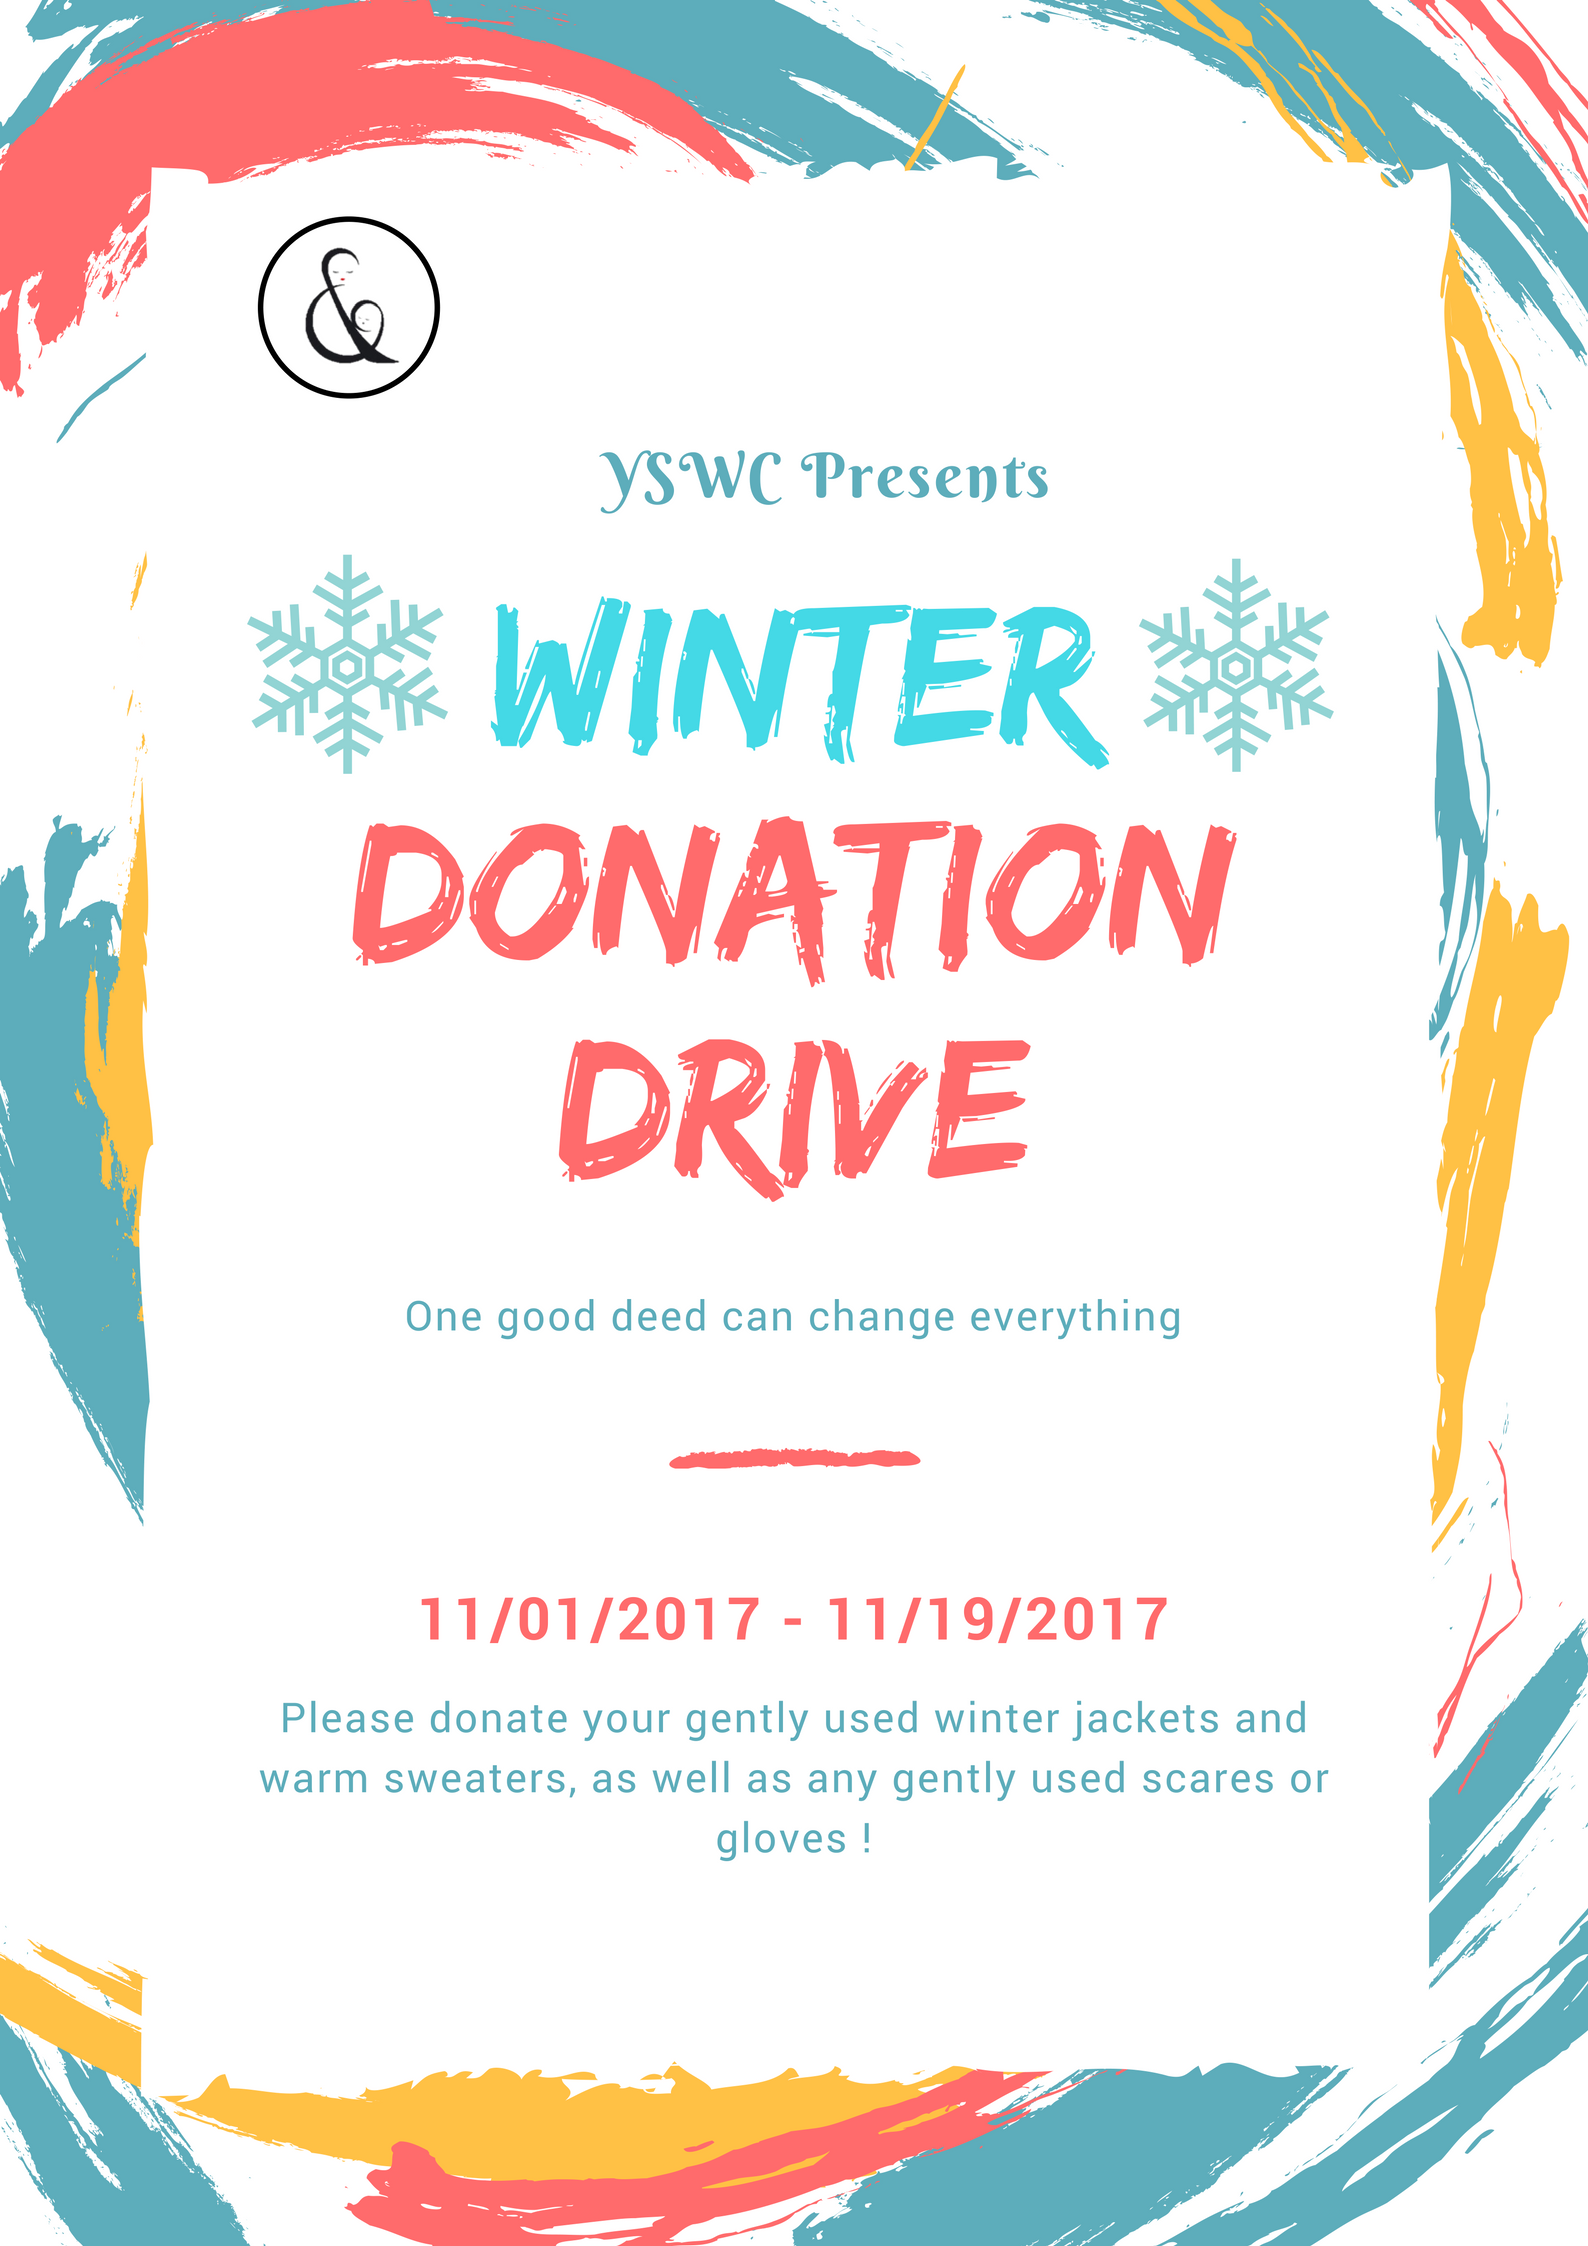 Yswc Winter Donation Drive \u2013 York Students for Women and